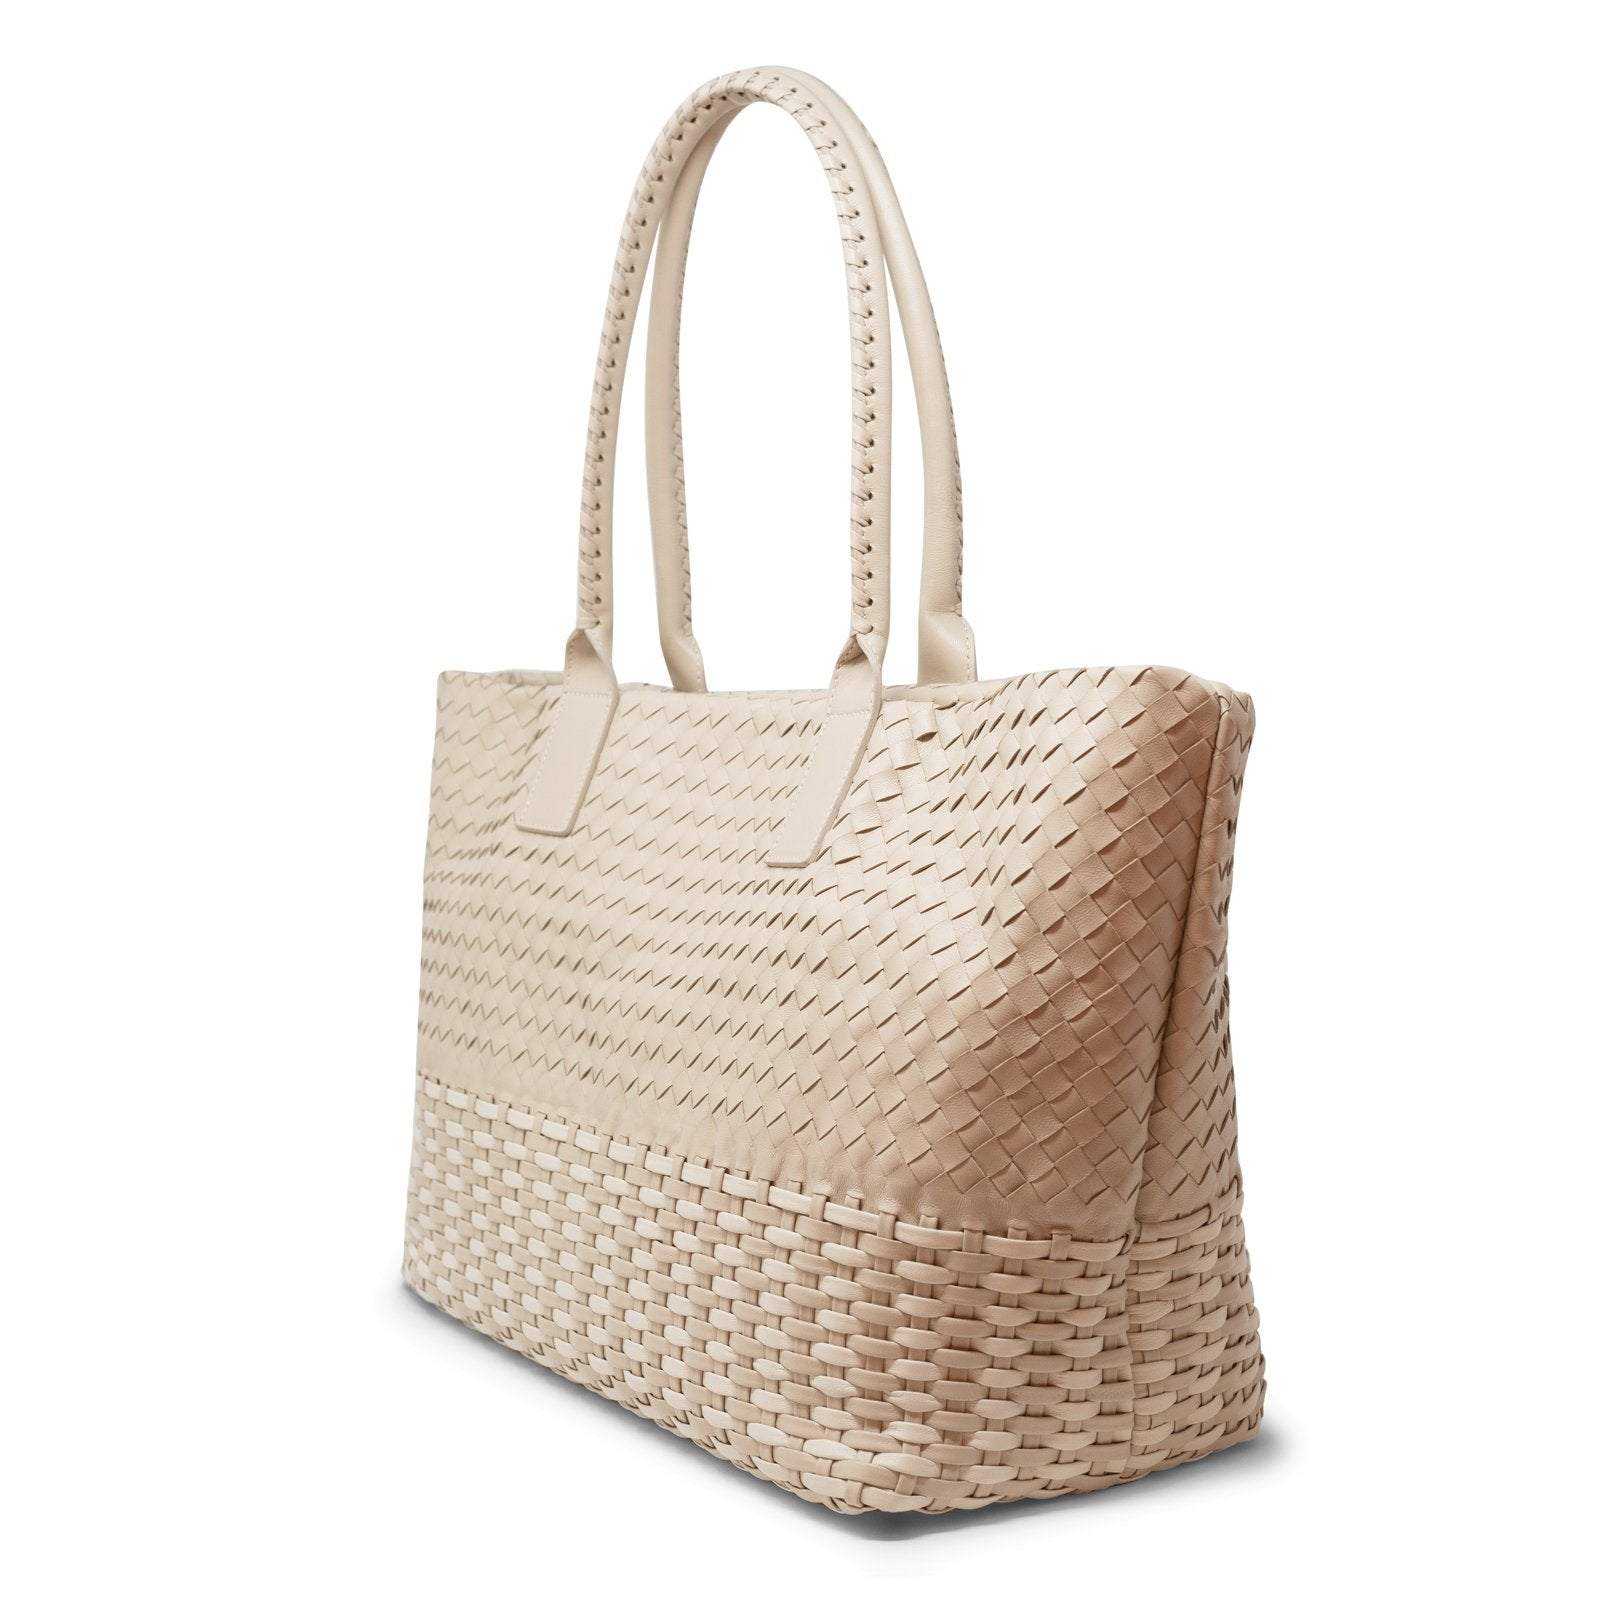 Maxi Zippered Leather Shopping Bag - Intrecciato Quadro Canestro 5045 40 Zip Lunga - Jennifer Tattanelli